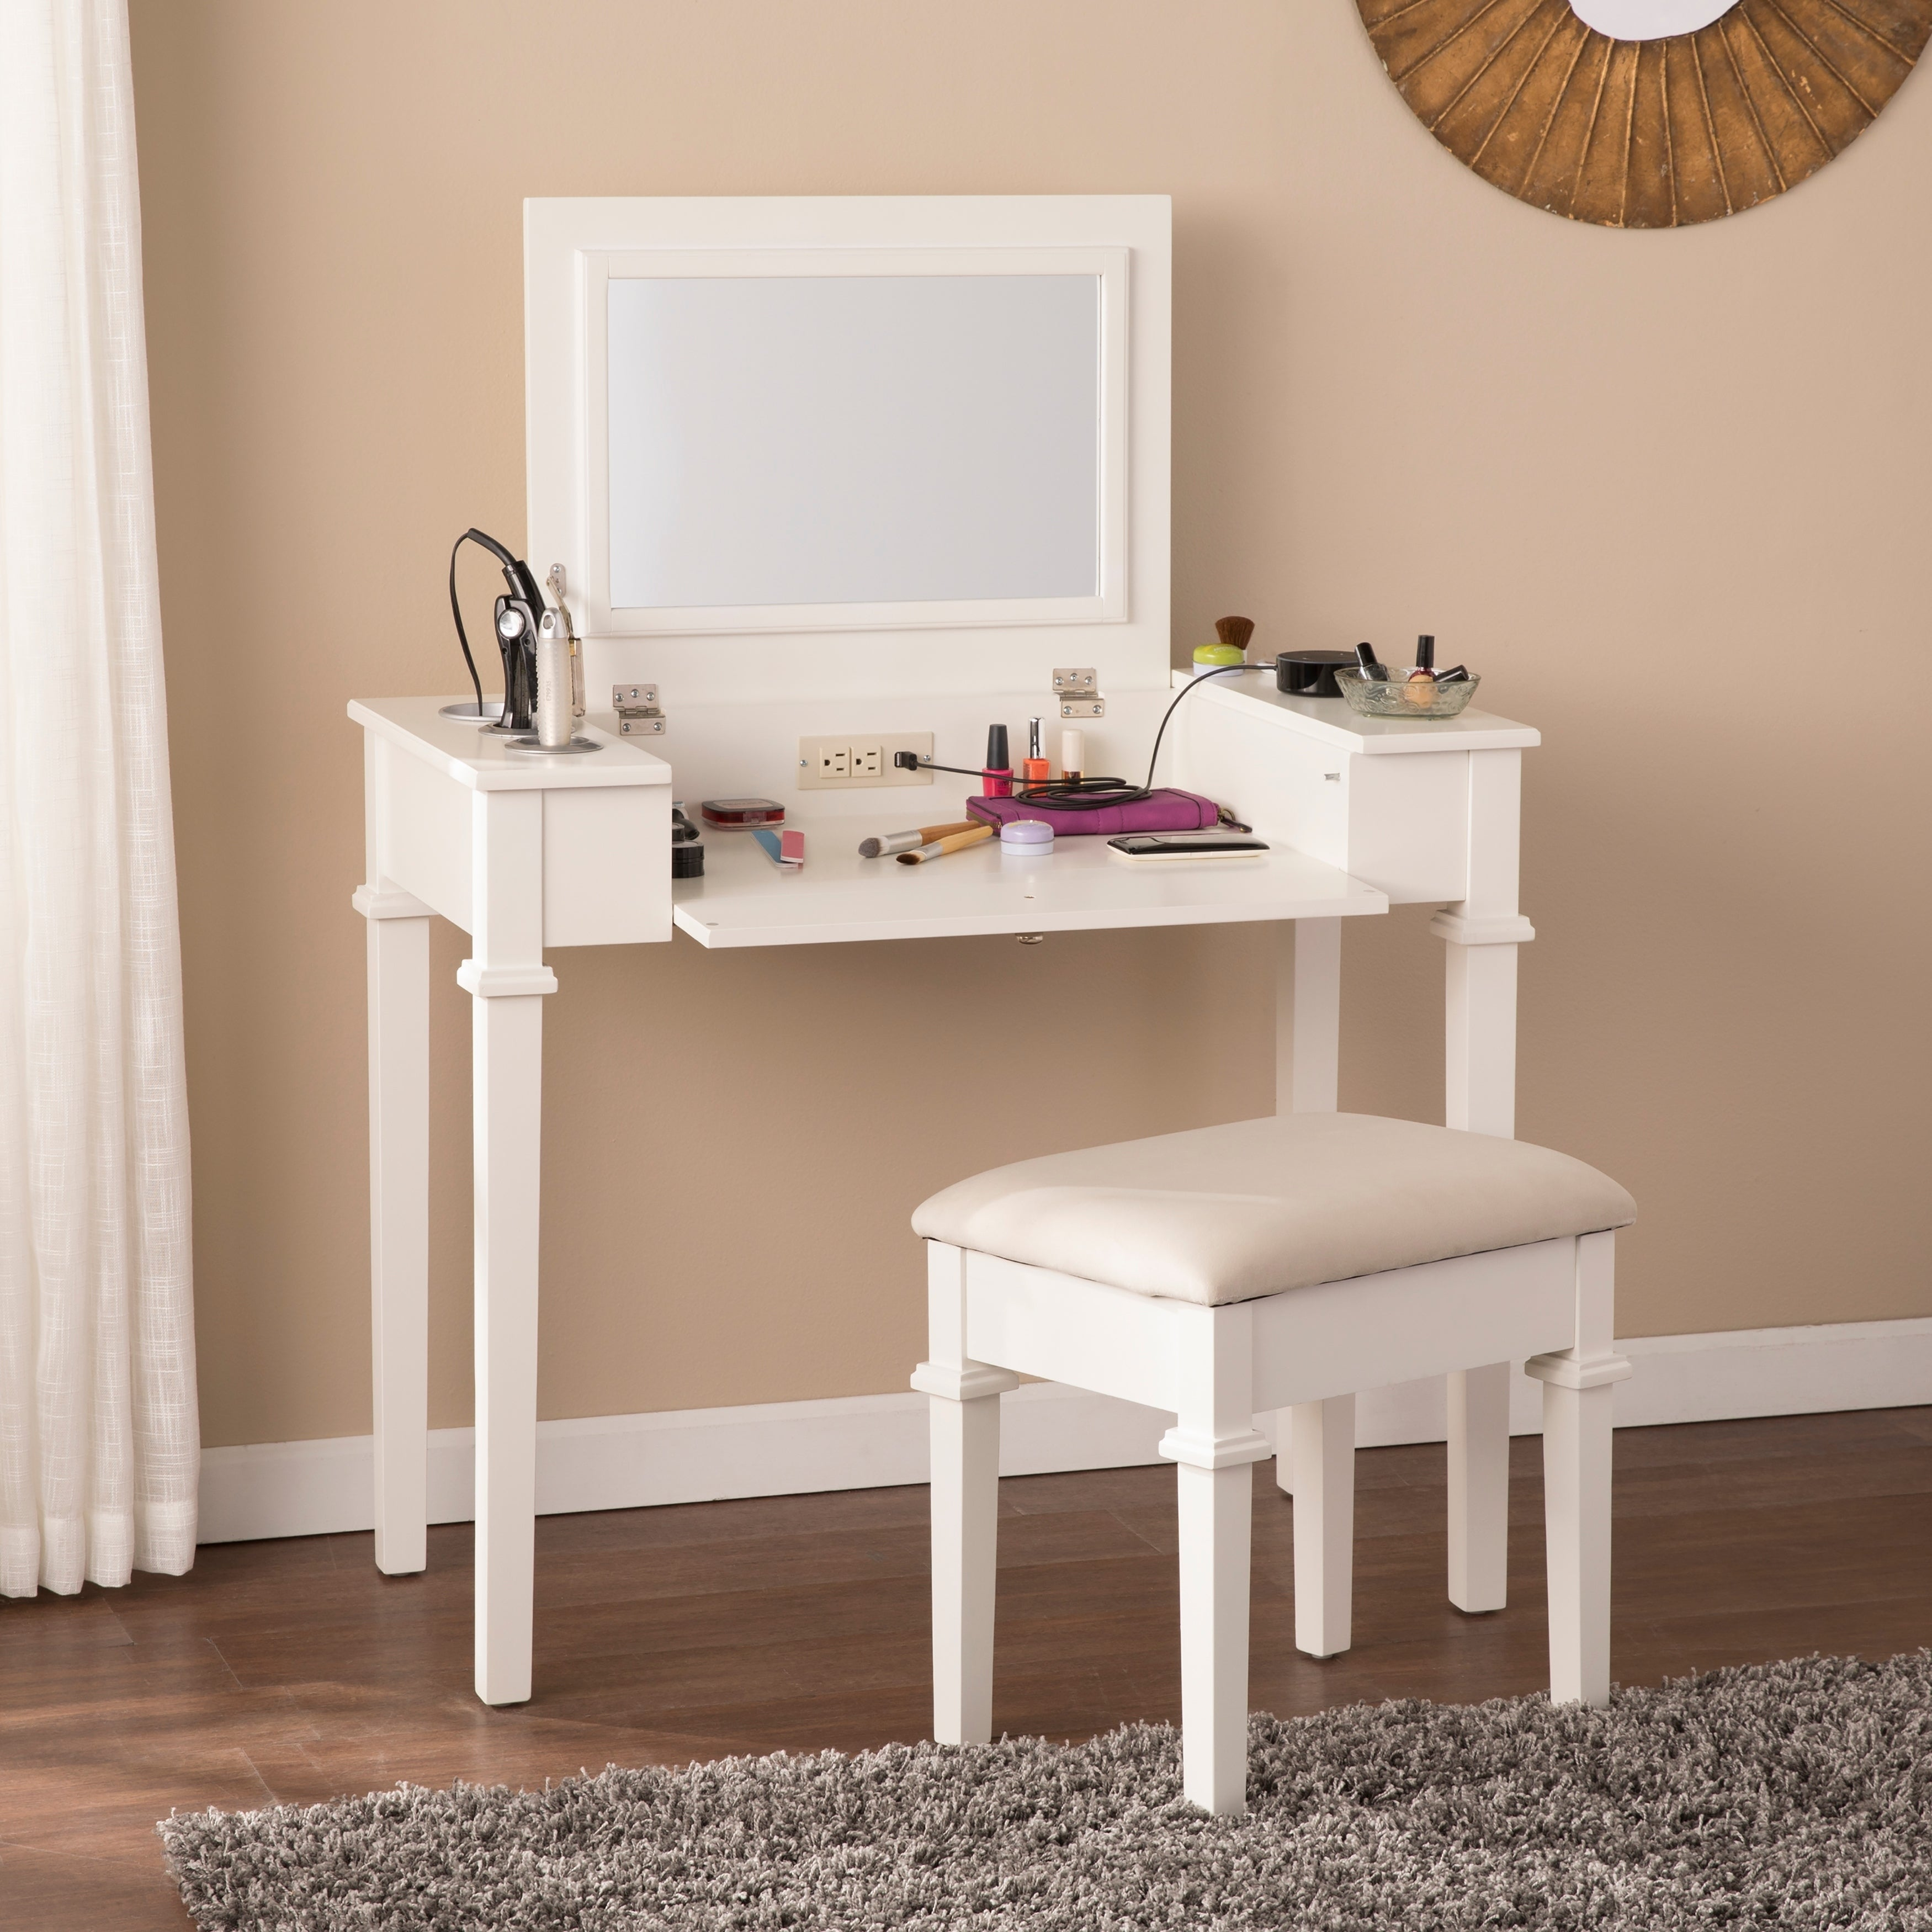 Swell Harper Blvd Rovelto Vanity Desk W Stool Set Gmtry Best Dining Table And Chair Ideas Images Gmtryco